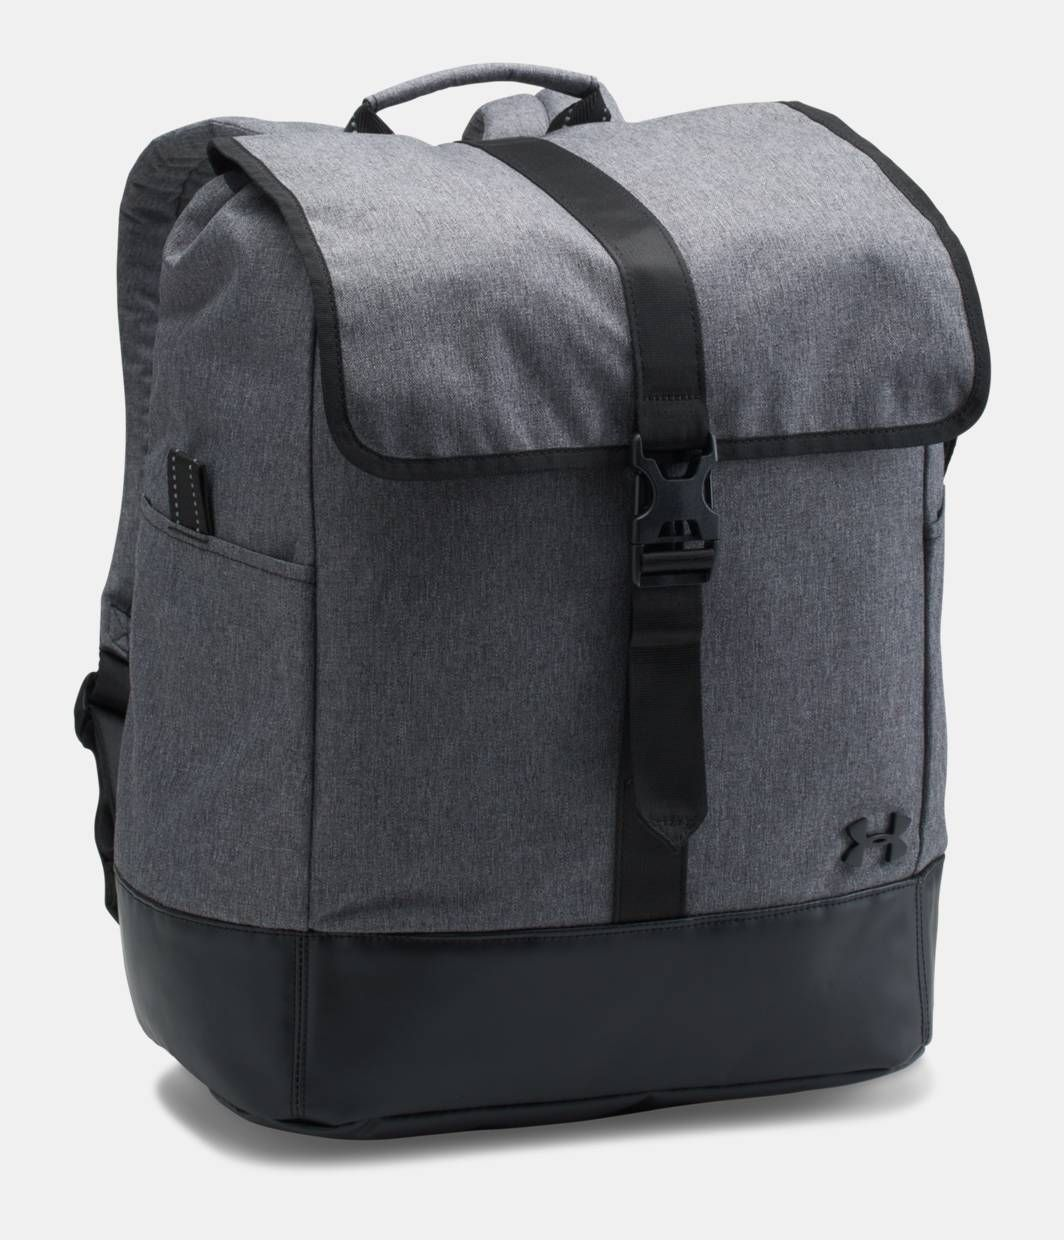 bbb39f2adfc6 Women's UA Downtown Backpack | Under Armour US | Gift Ideas ...